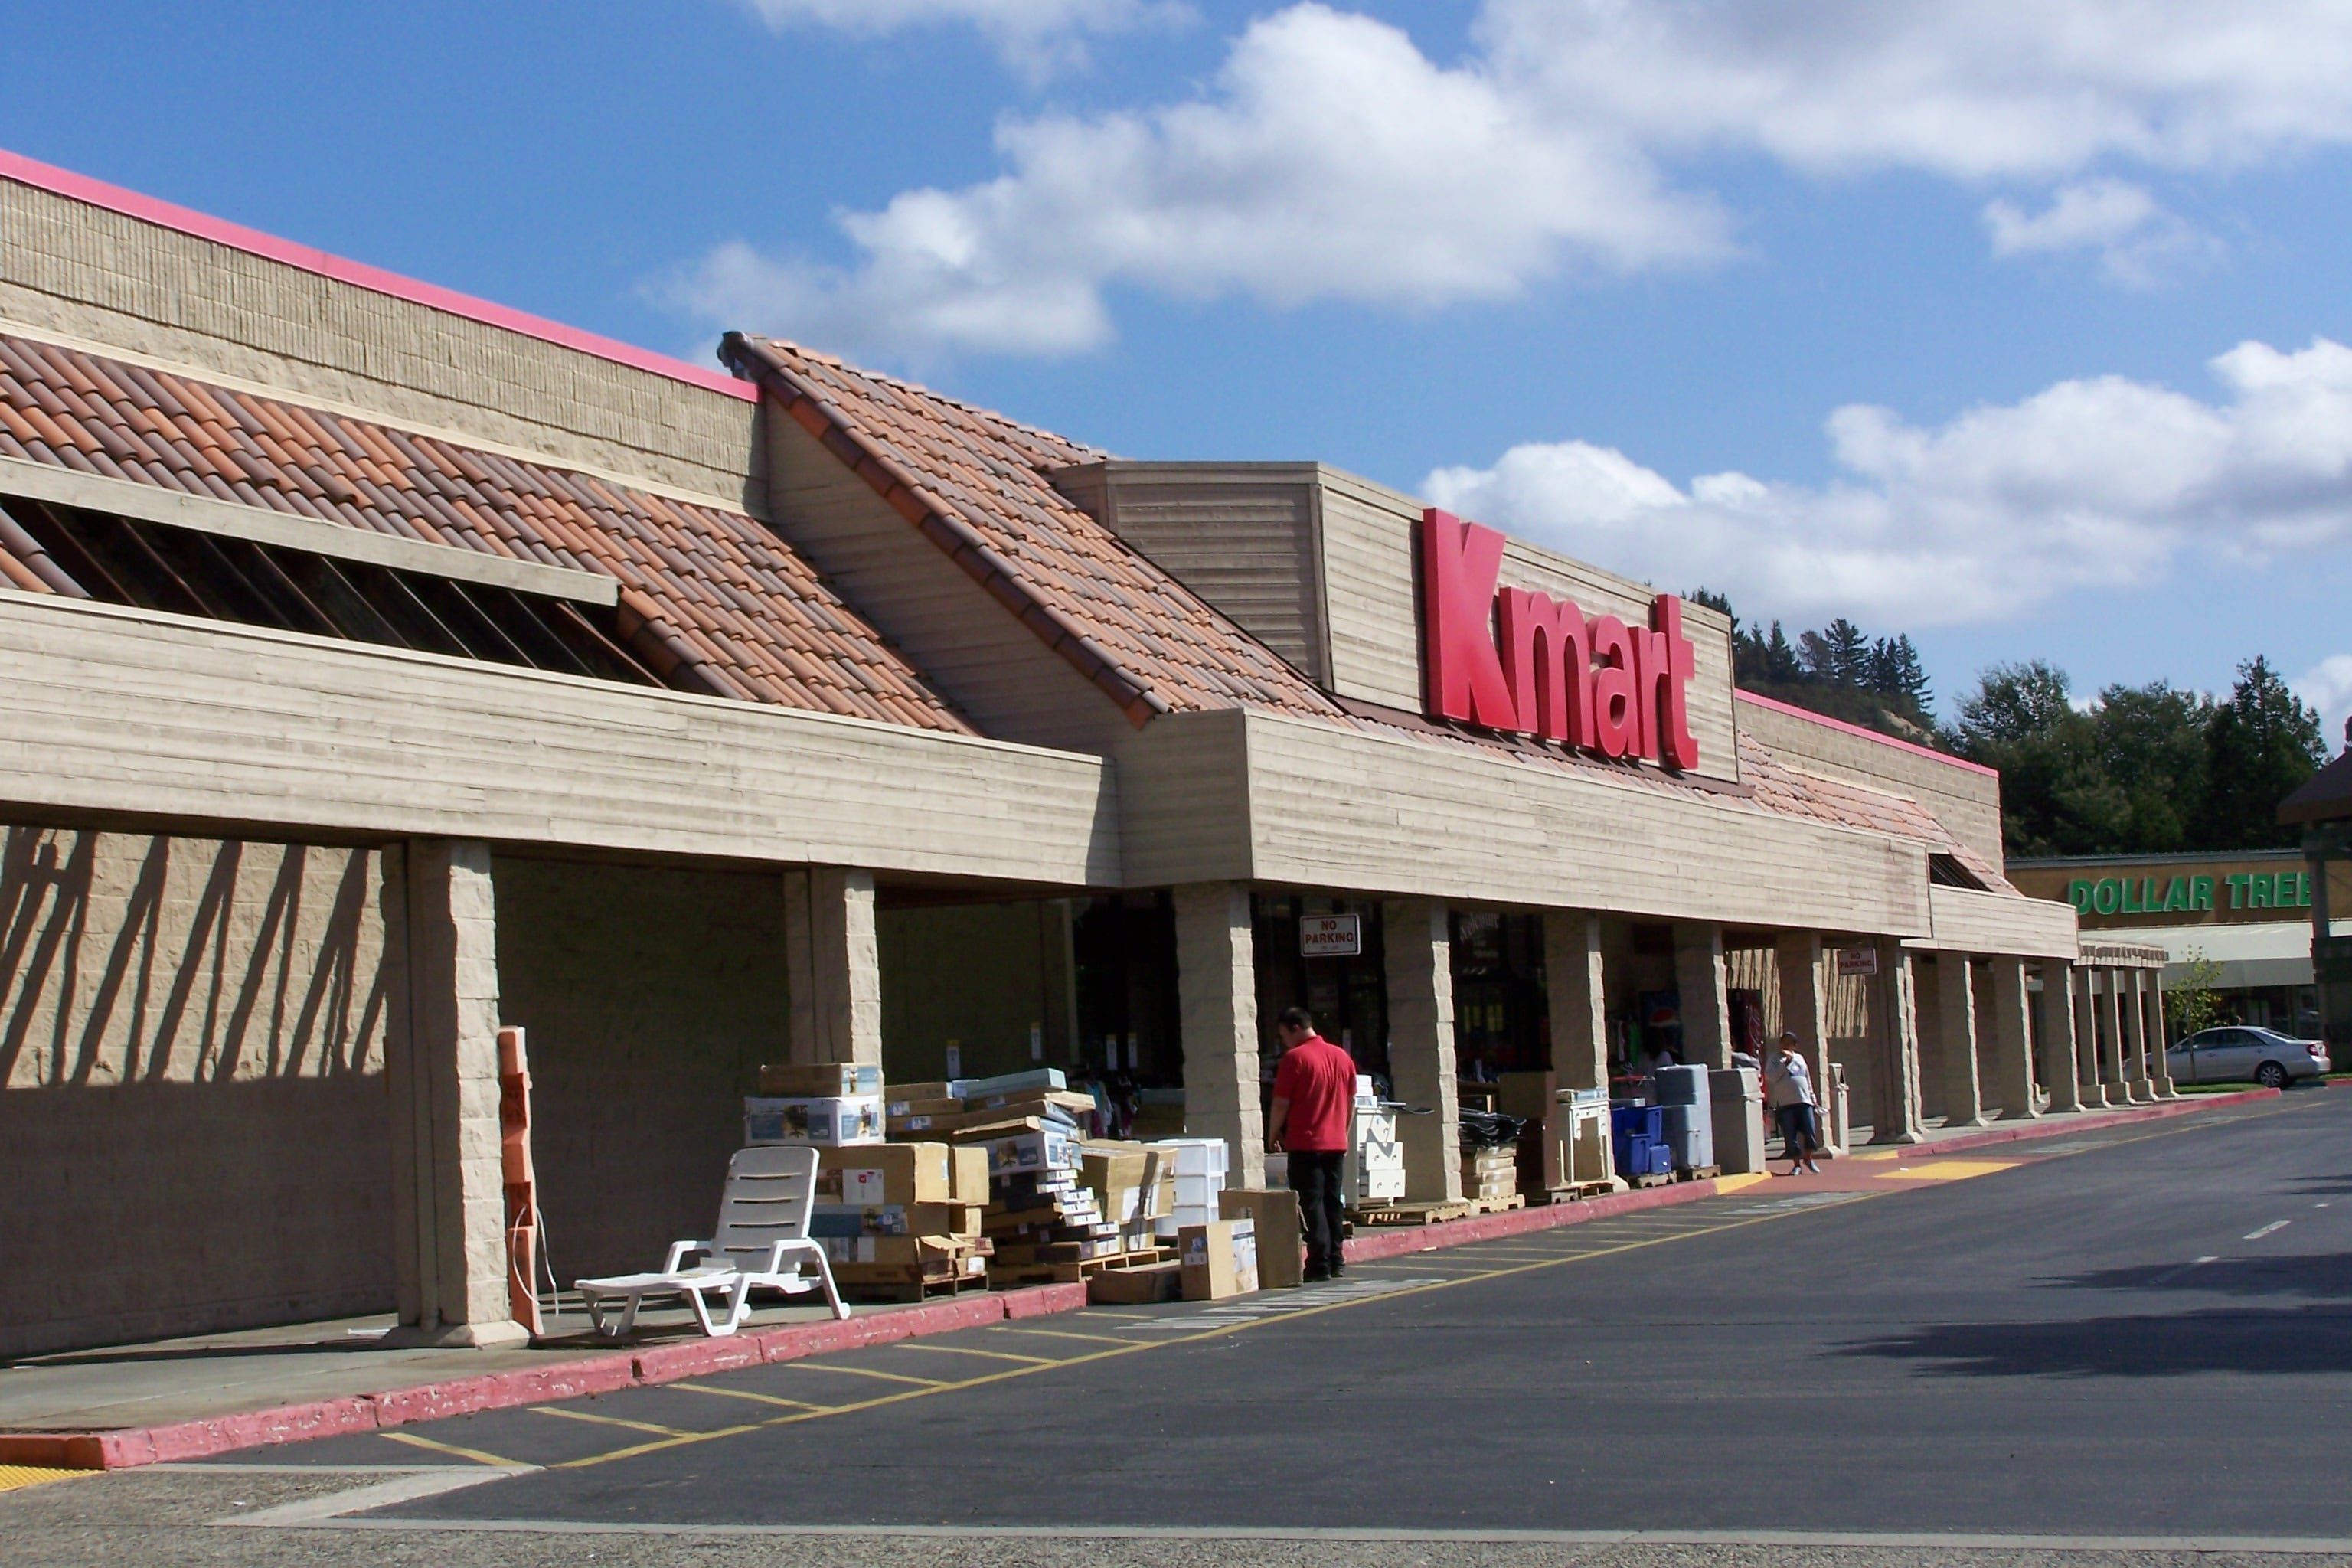 Scotts Valley Kmart Safe–For Now | Scotts Valley, CA Patch